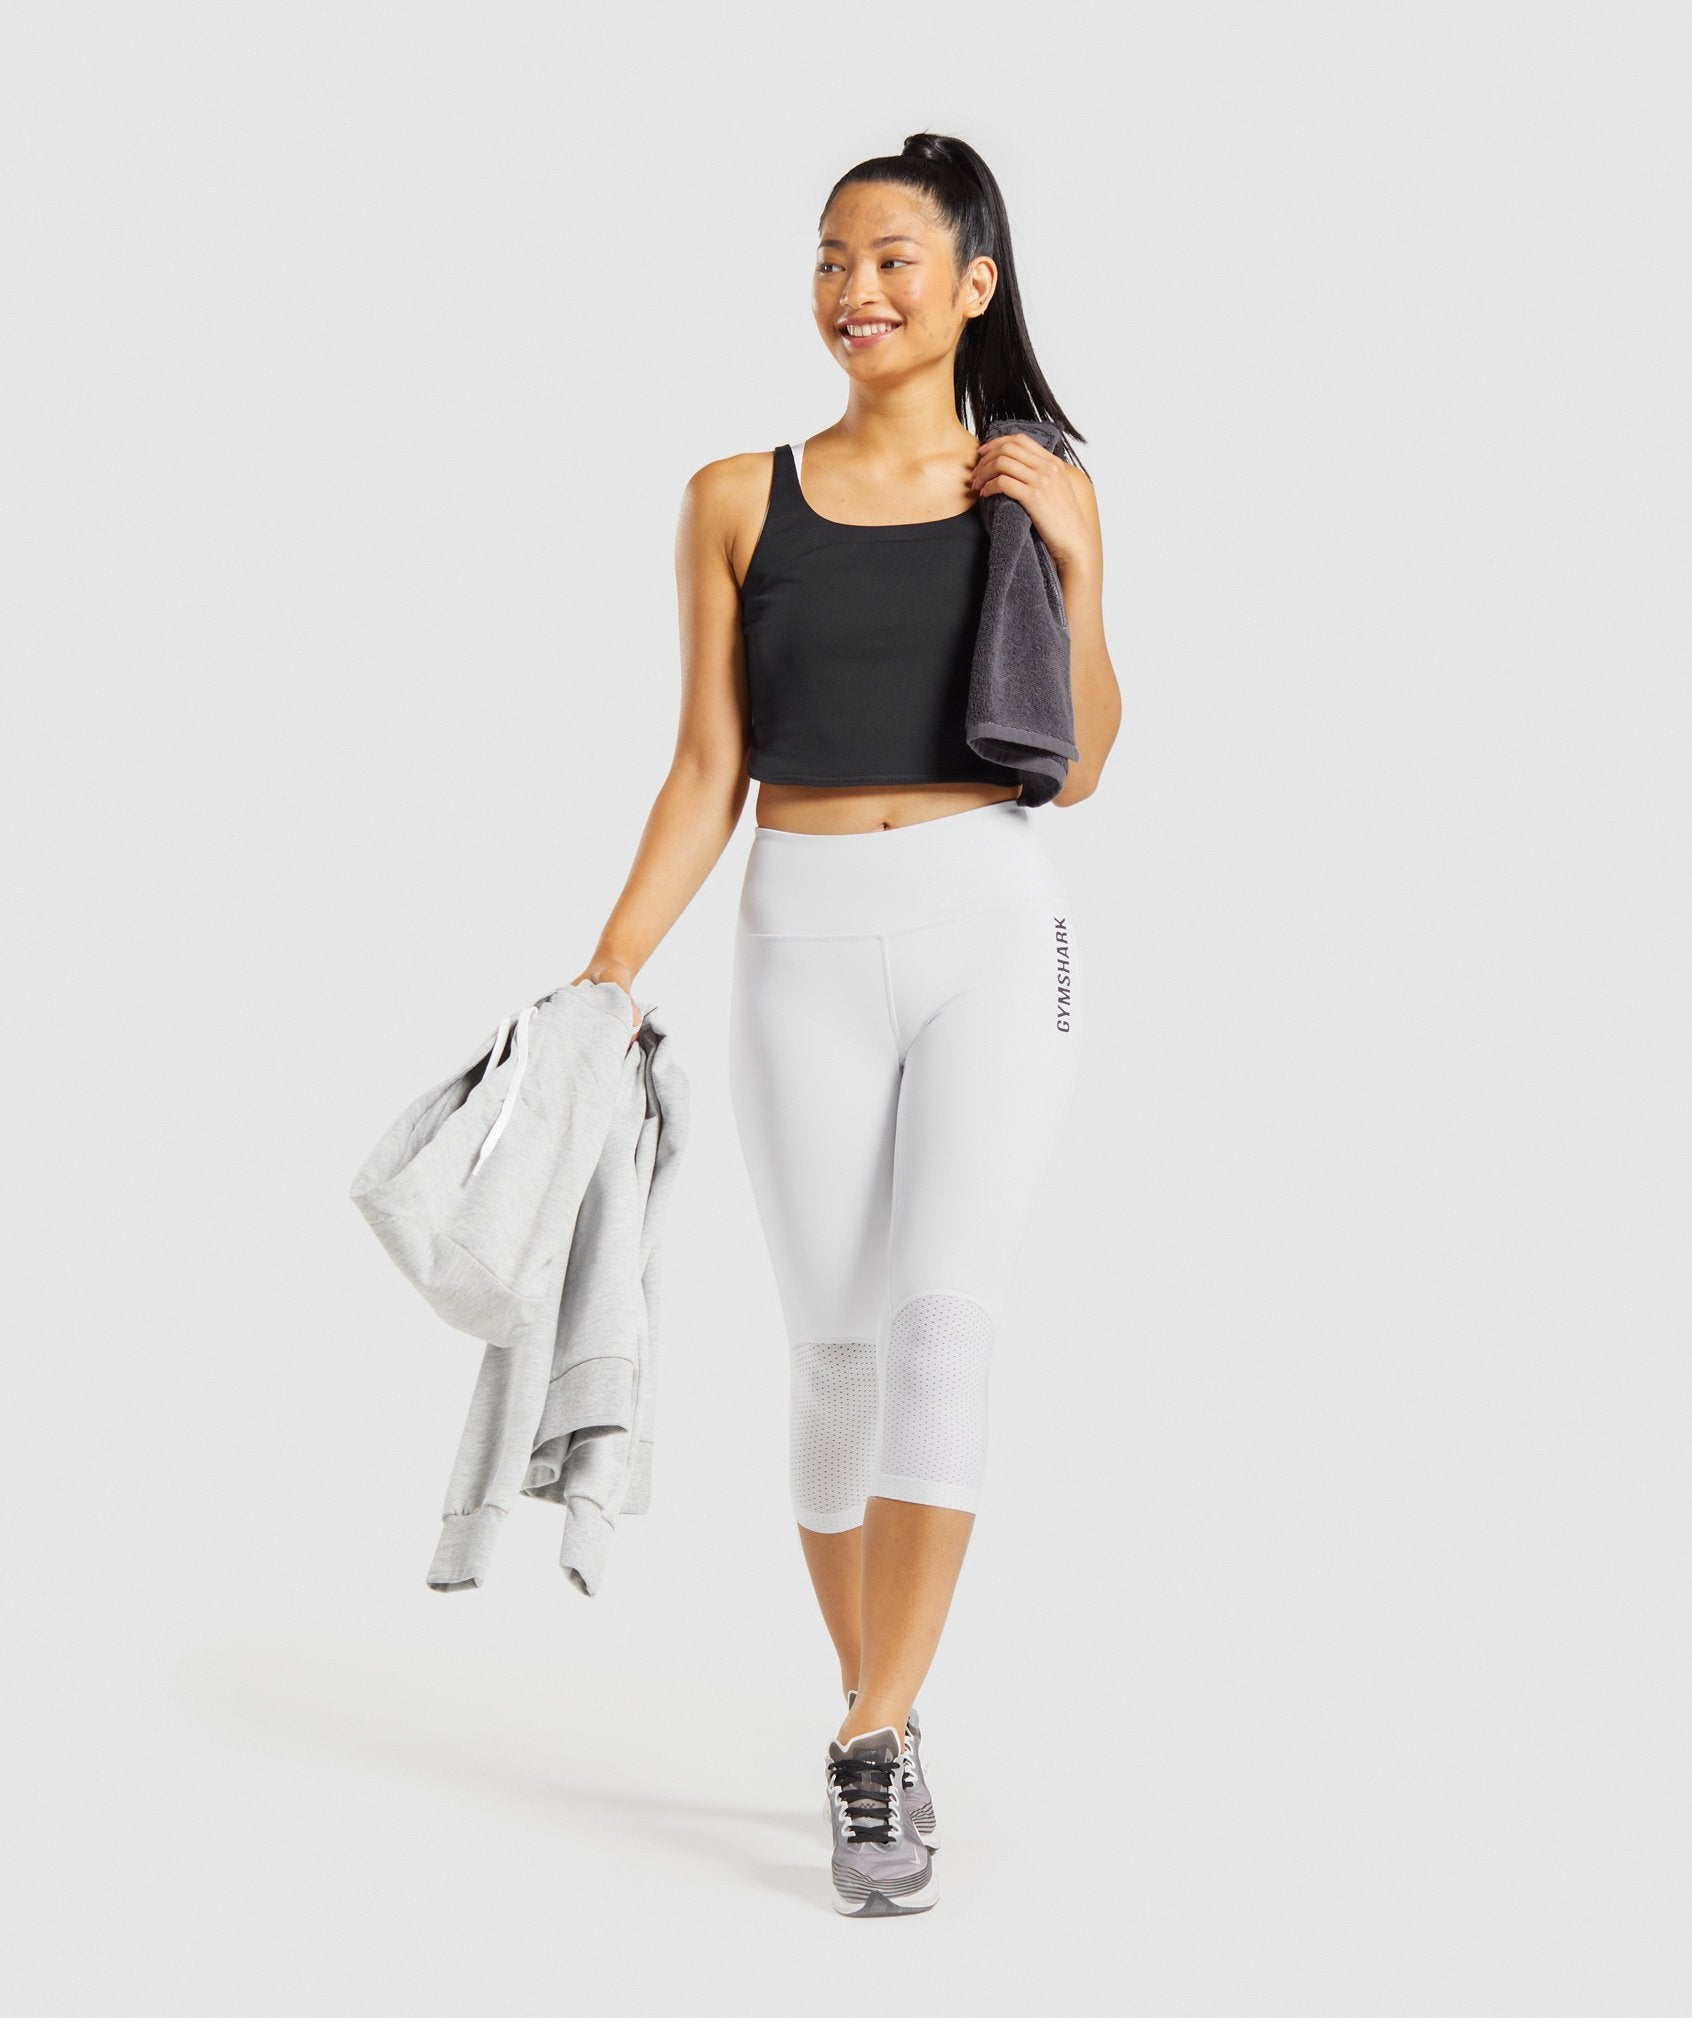 Classier: Buy Gymshark Pulse Cropped Leggings - White - Gymshark